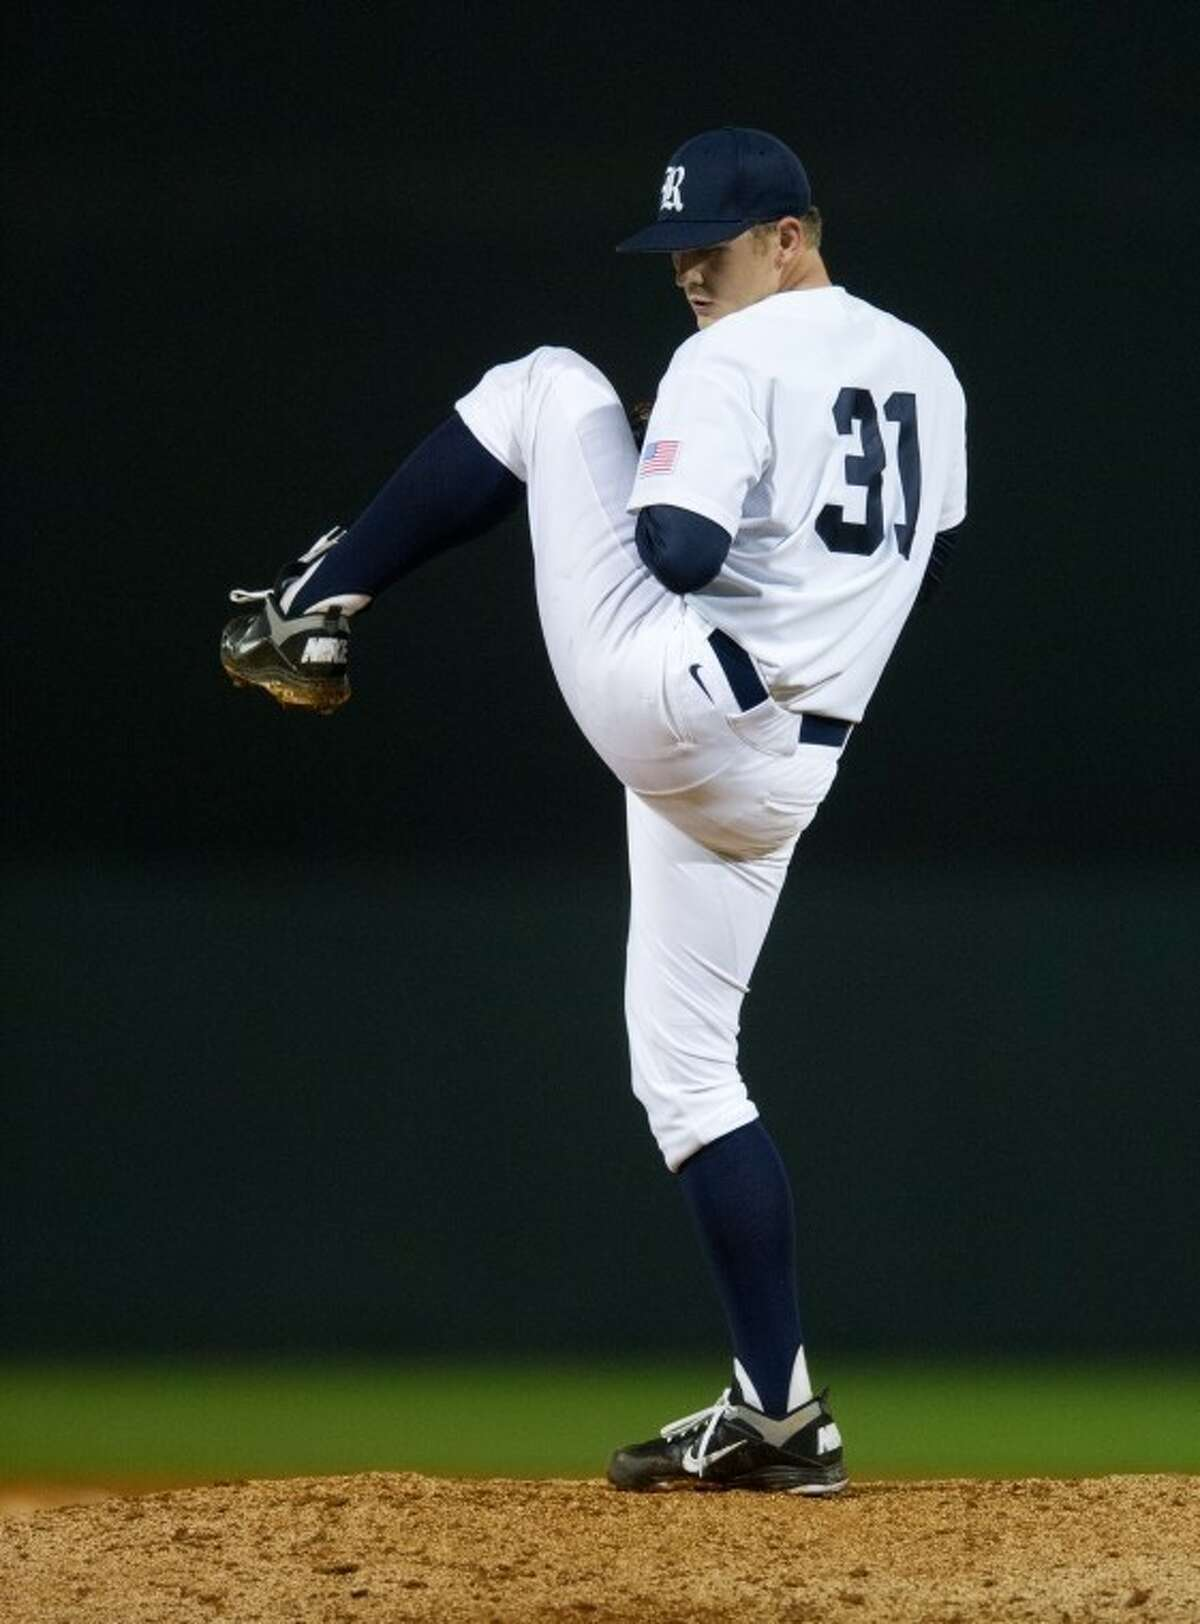 Rice junior reliever and Bellaire High School grad Tyler Duffey was selected by the Minnesota Twins in the fifth round of the 2012 MLB Draft. Duffey compiled a 1.93 ERA and seven saves in 51 1/3 innings this season.